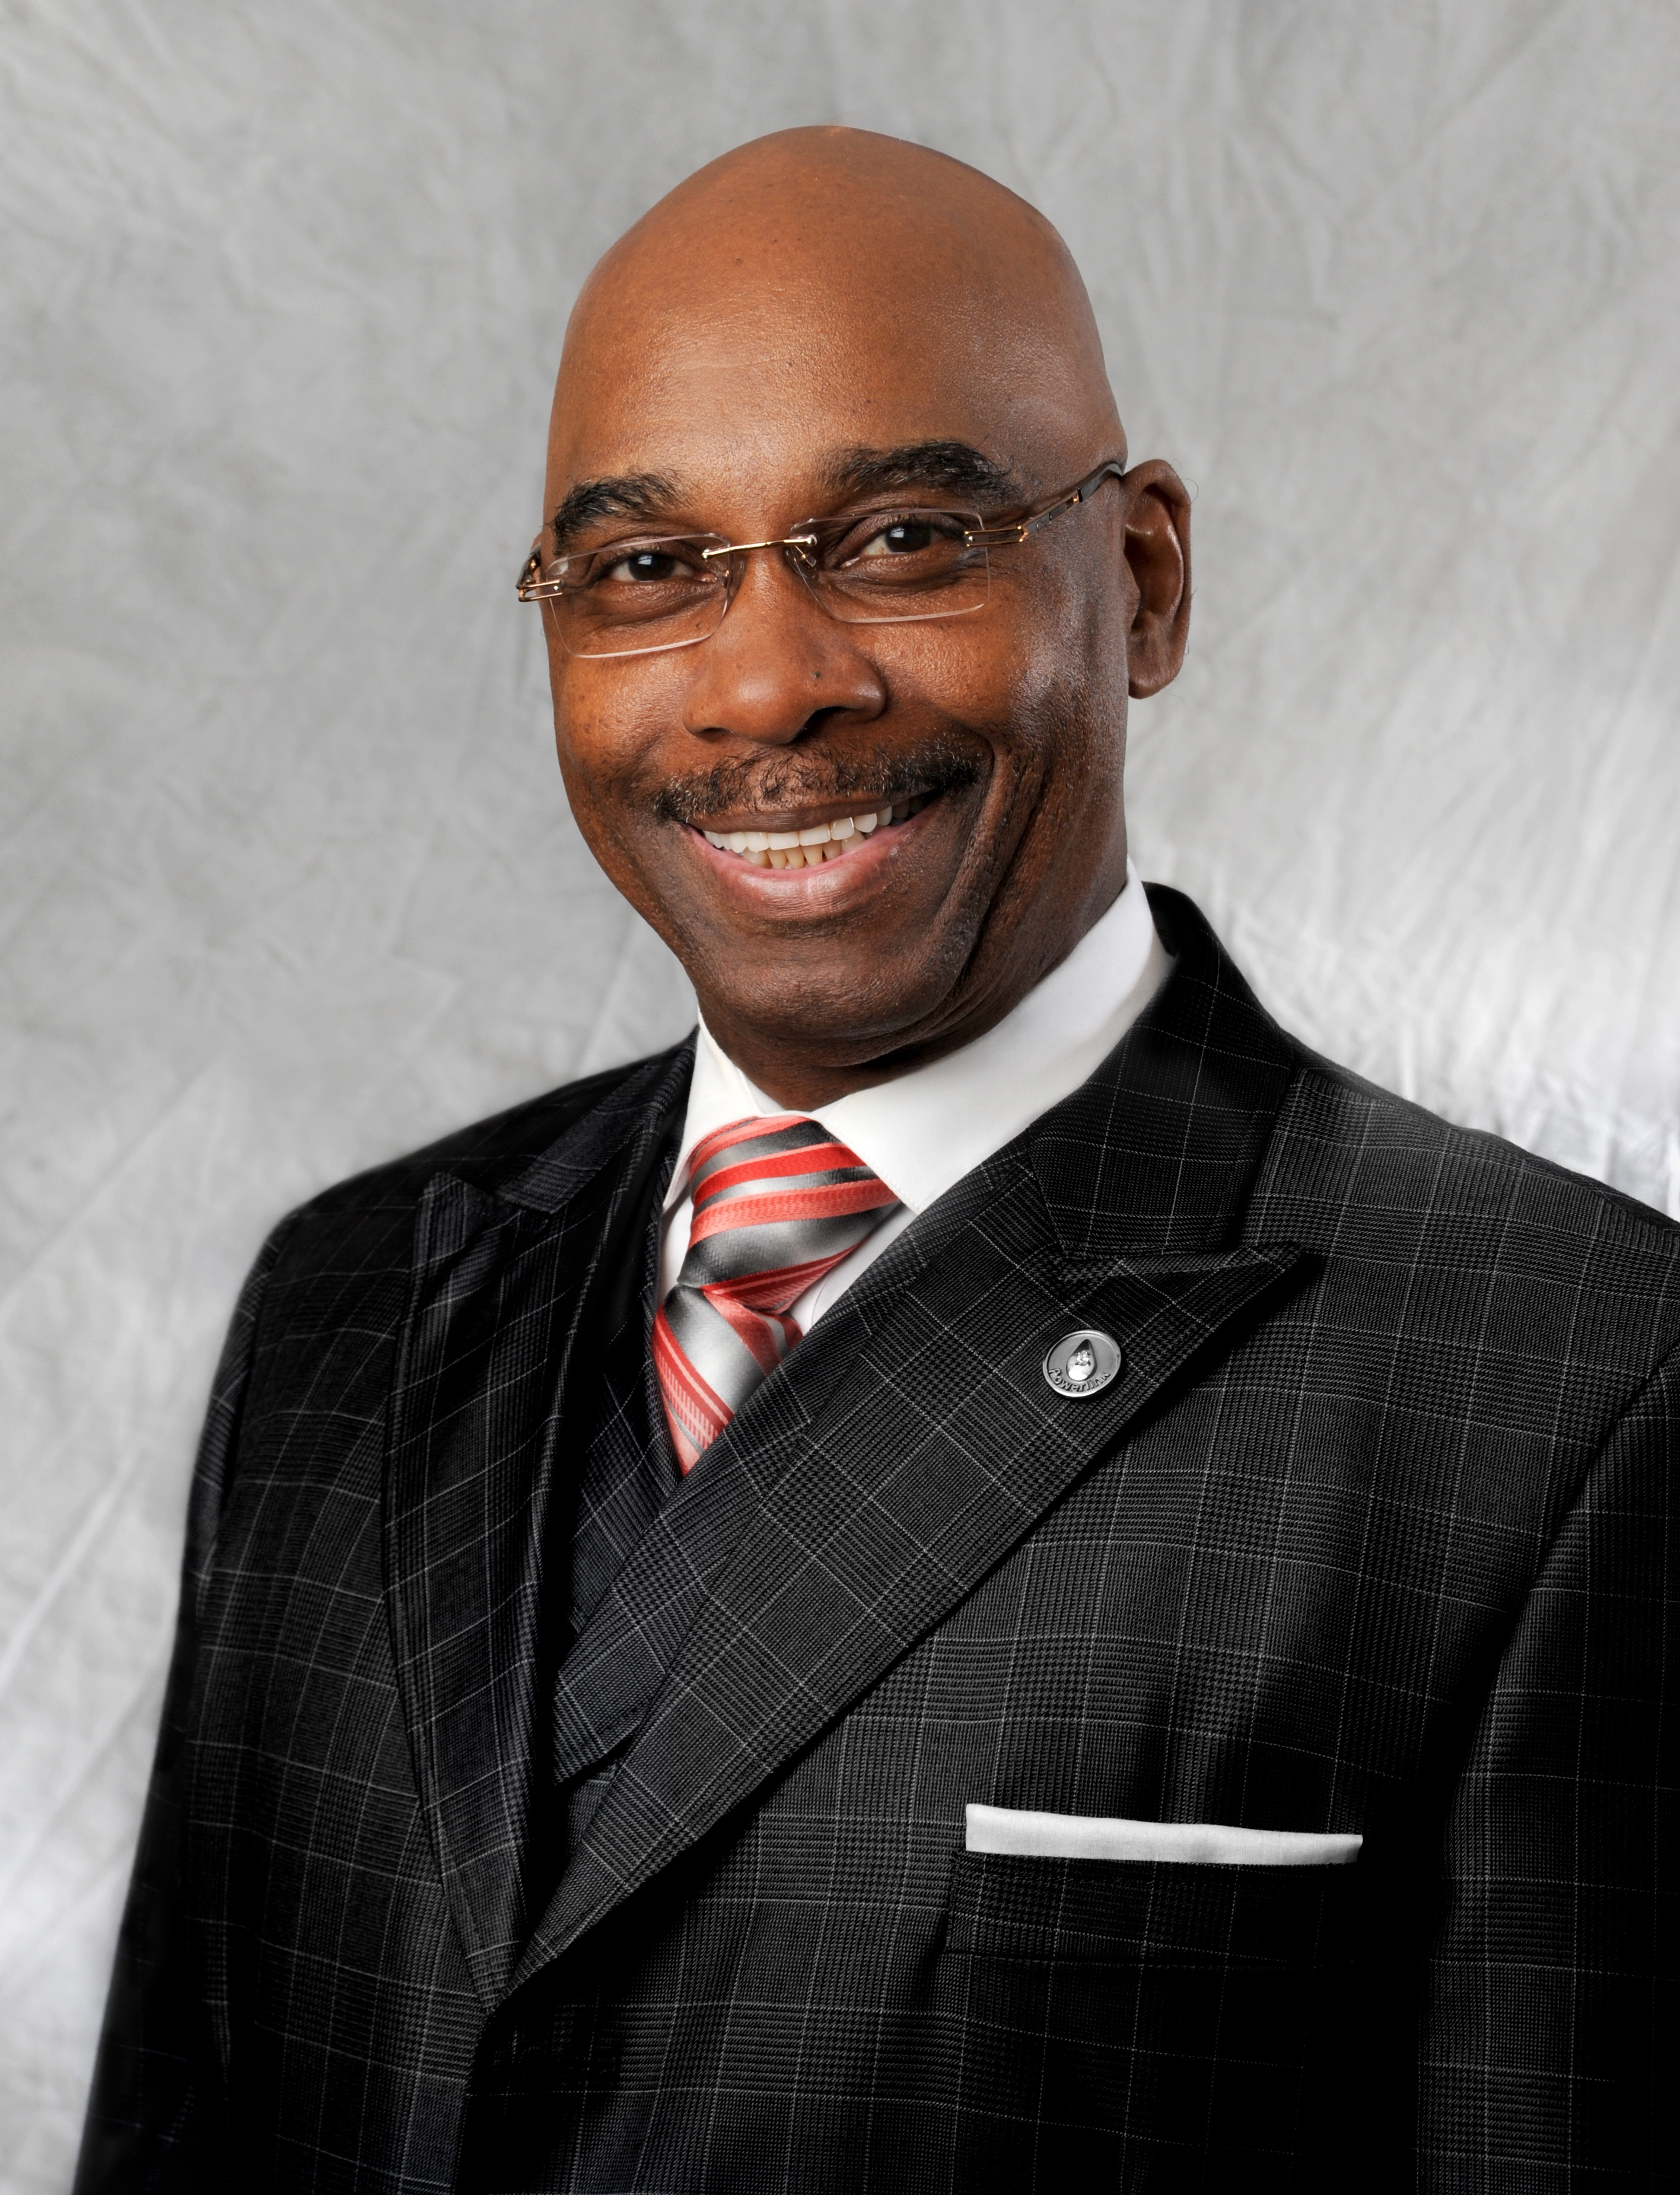 Debuting on the BE100s Industrial/Service list at No. 97 is Powerlink Facilities Management Services out of Detroit, Michigan. Powerlink Facilities, led by Link Howard III (pictured) is in the business of property and facilities management.